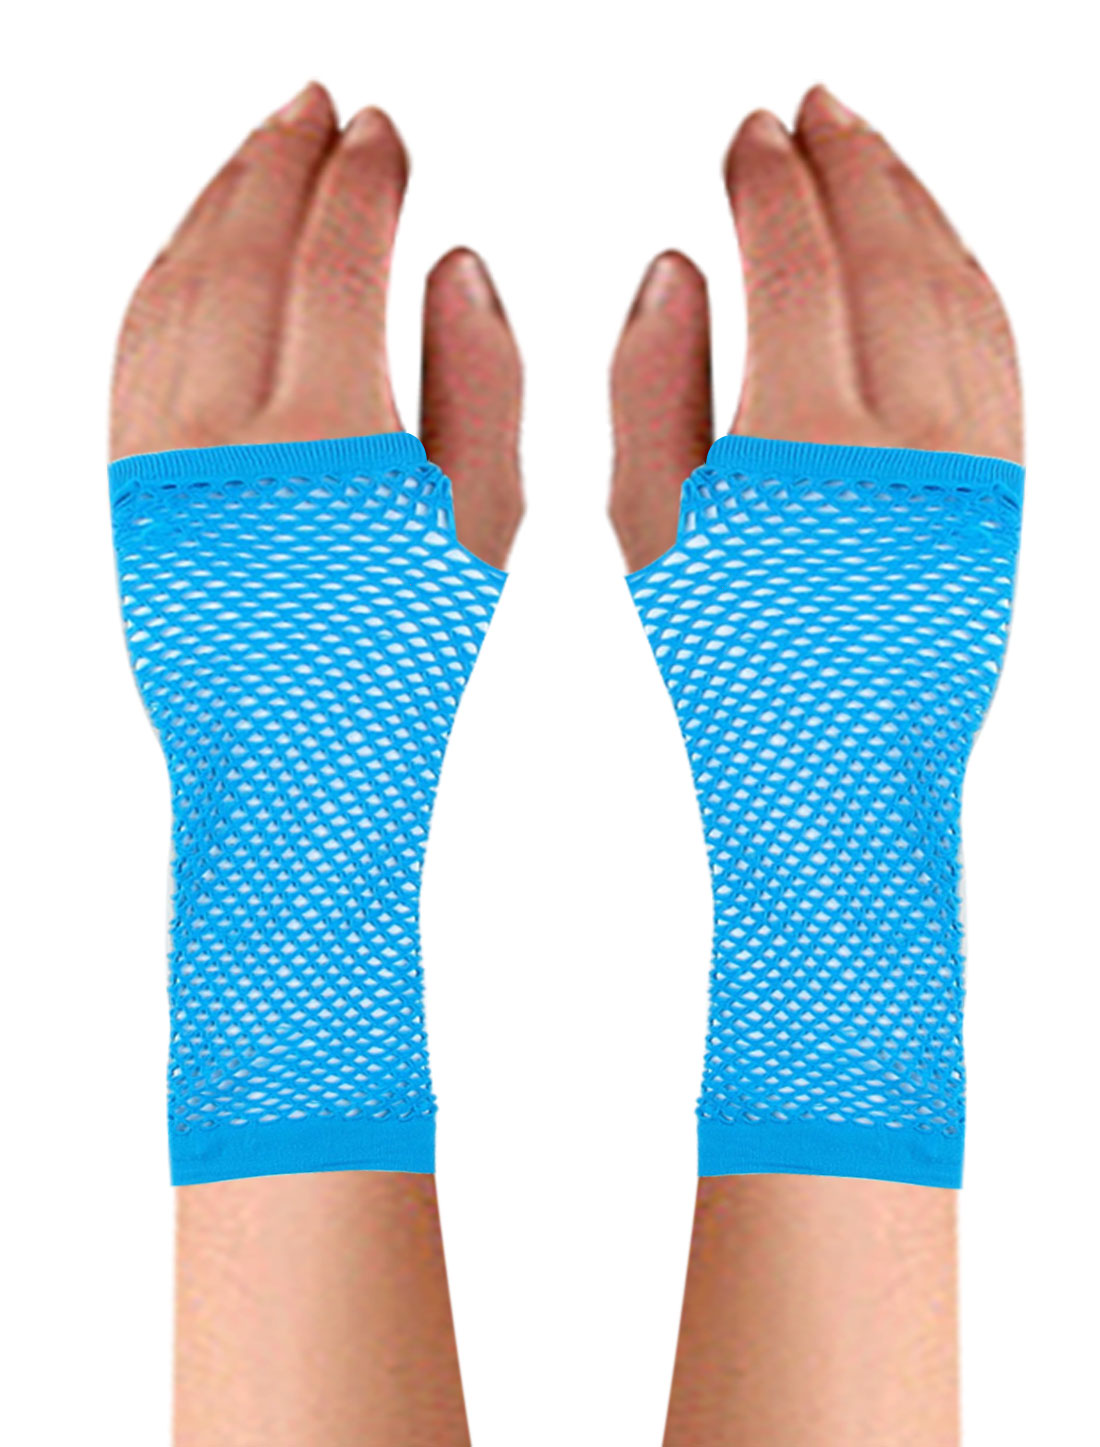 Pair Light Blue Stretchy Fishnet Elbow Fingerless Goth Arm Warmers for Lady